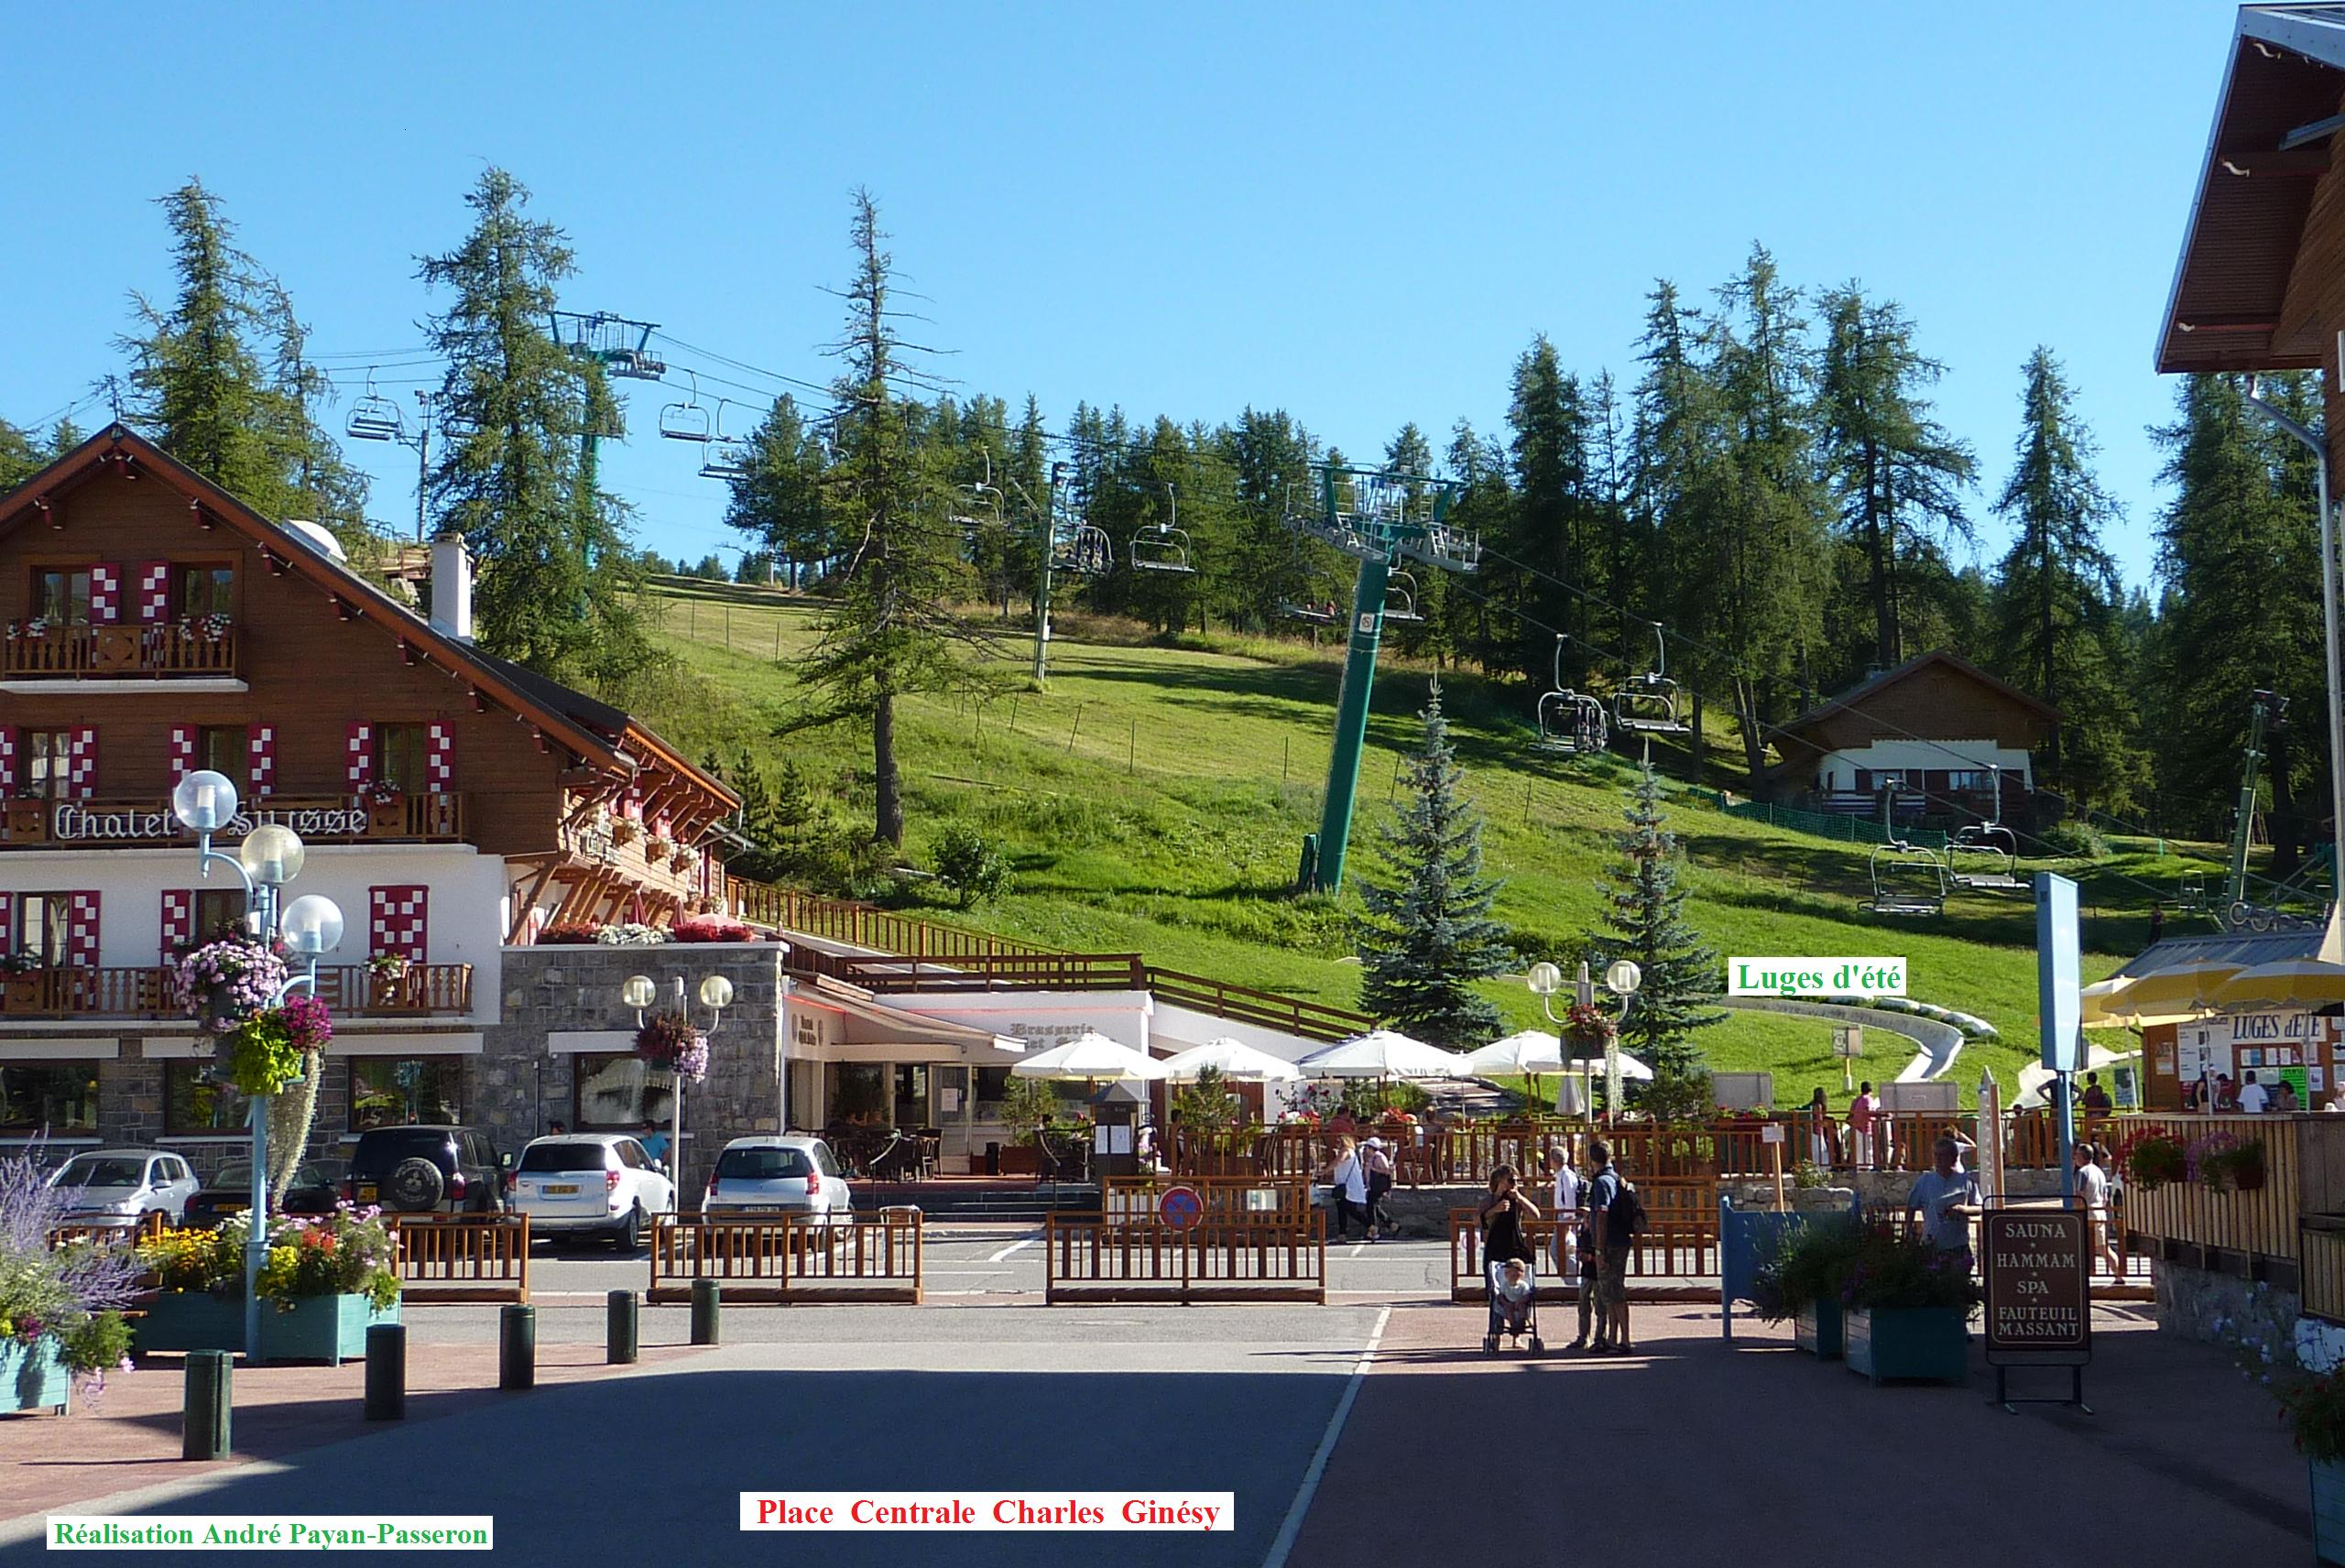 Valberg France  city photo : Au cœur du « village de charme » l'été à 1 673 mètres d ...